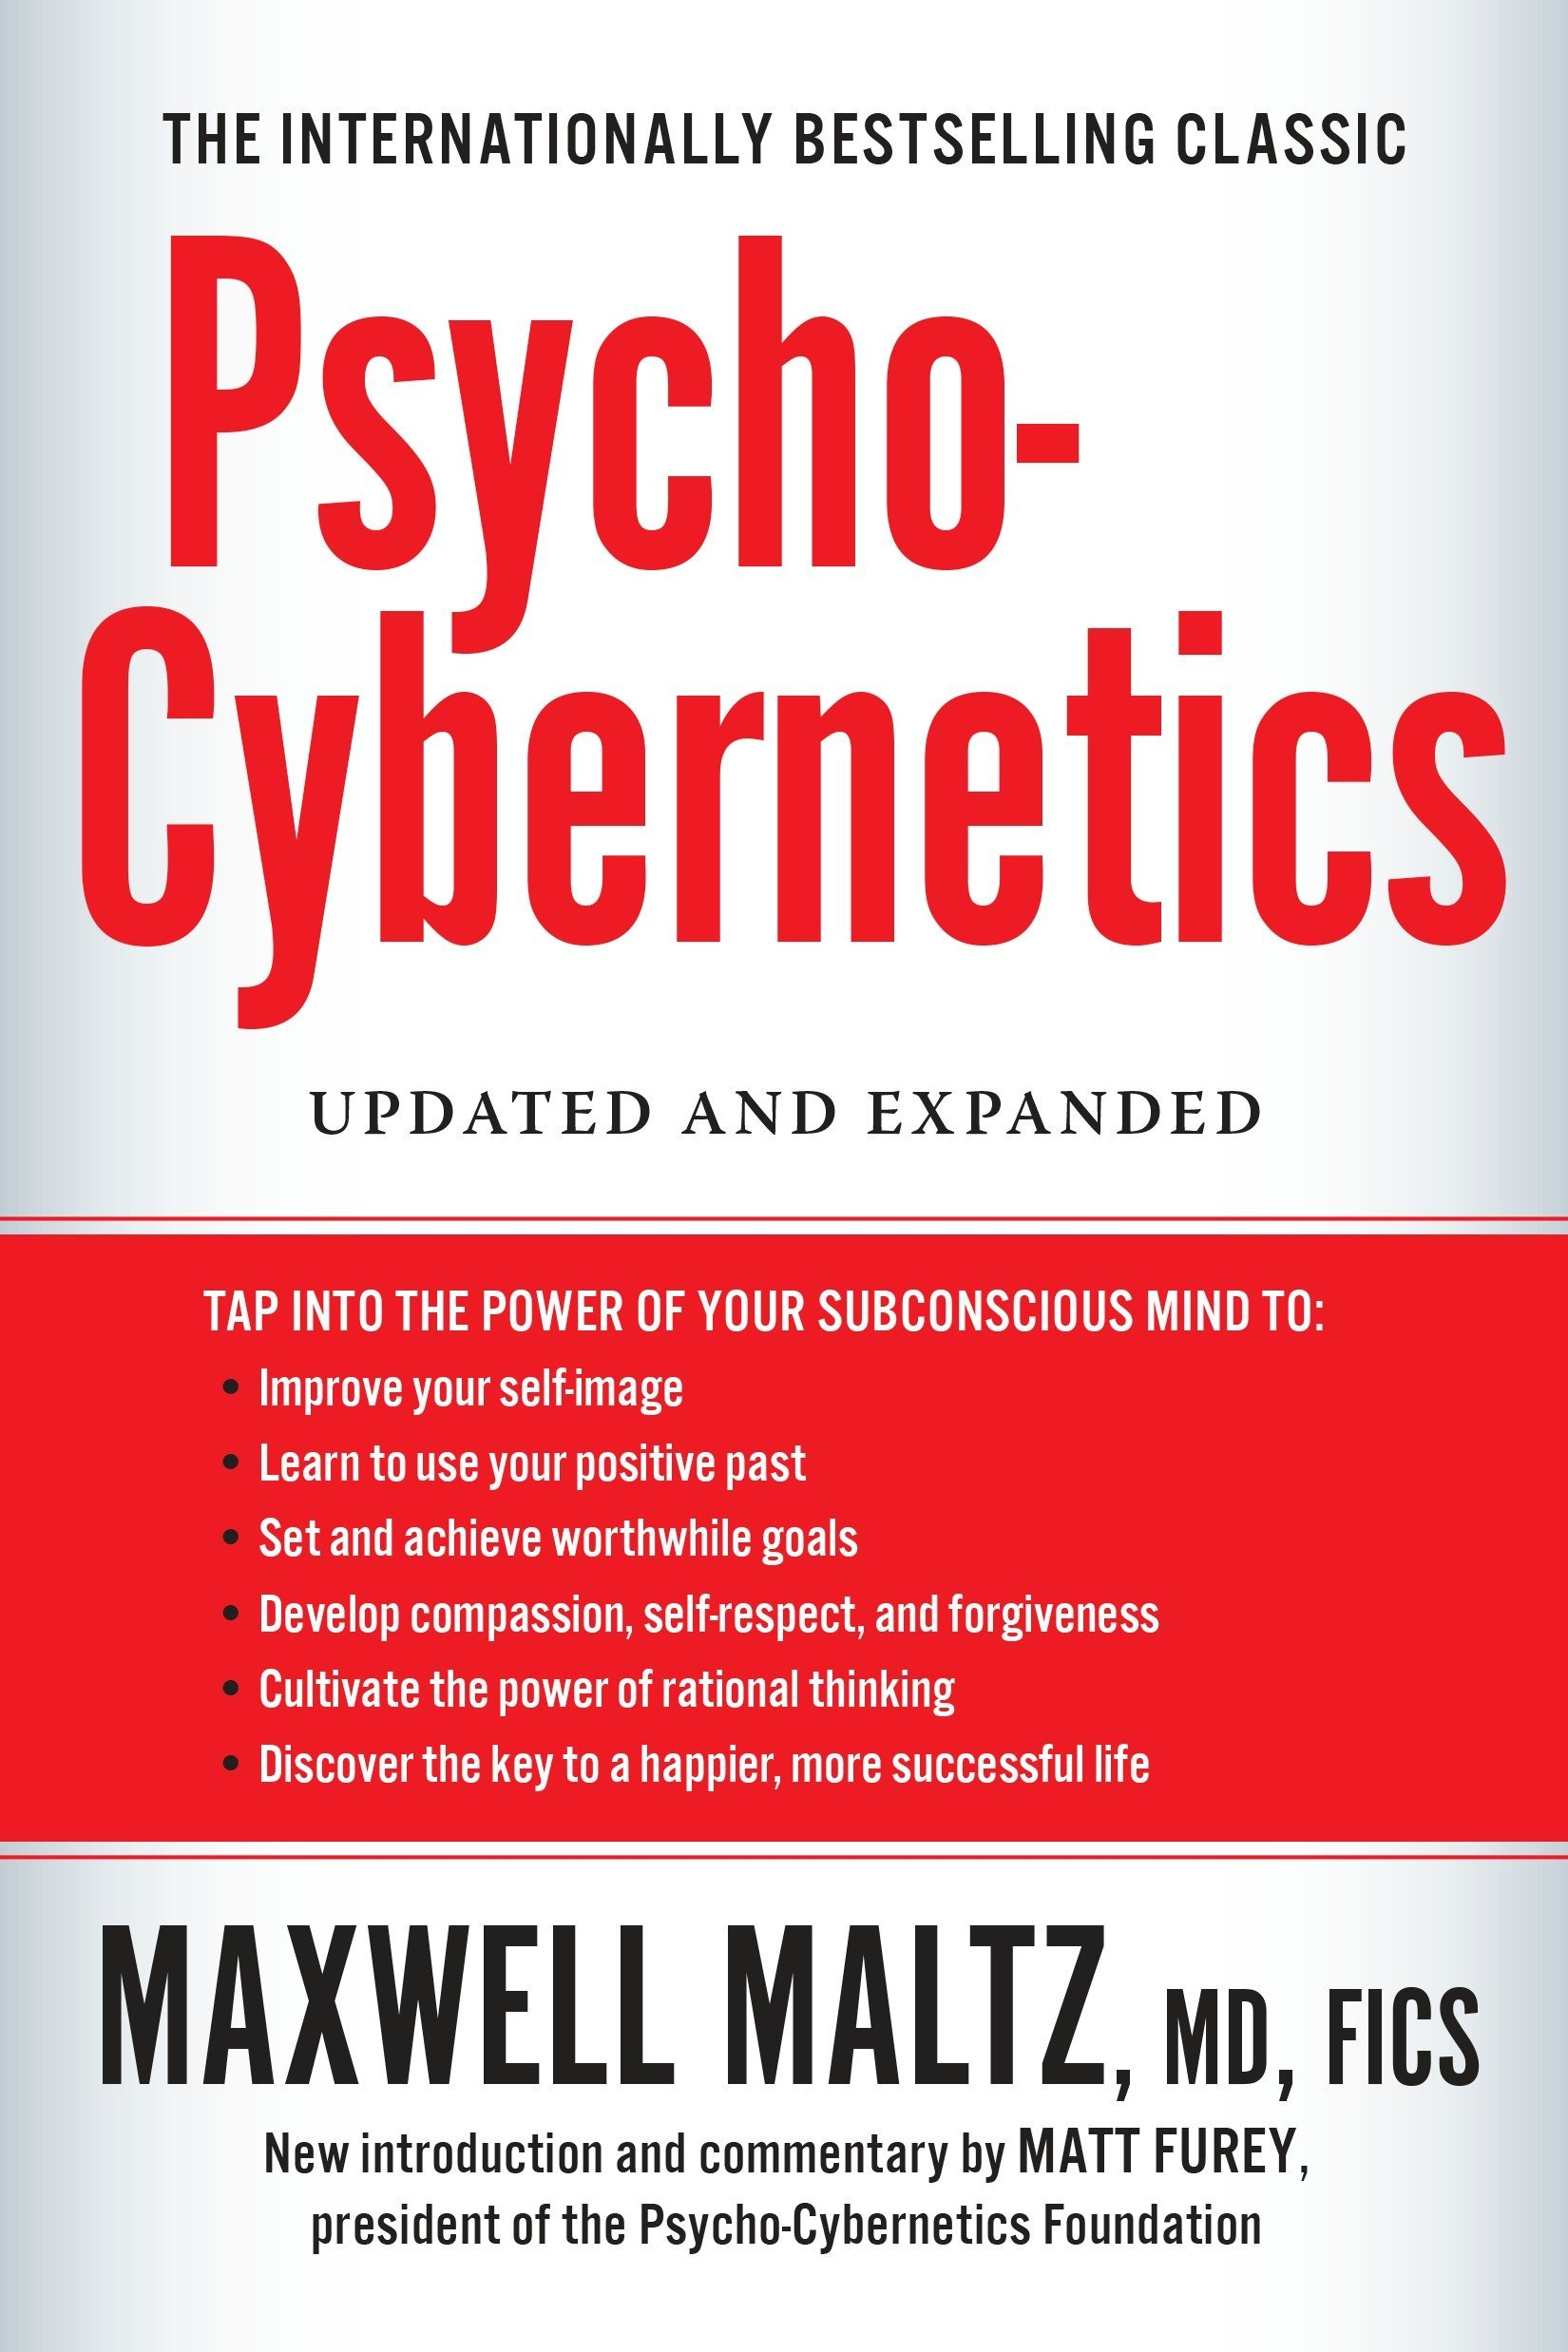 Psycho-Cybernetics: Updated and Expanded by Maltz Maxwell